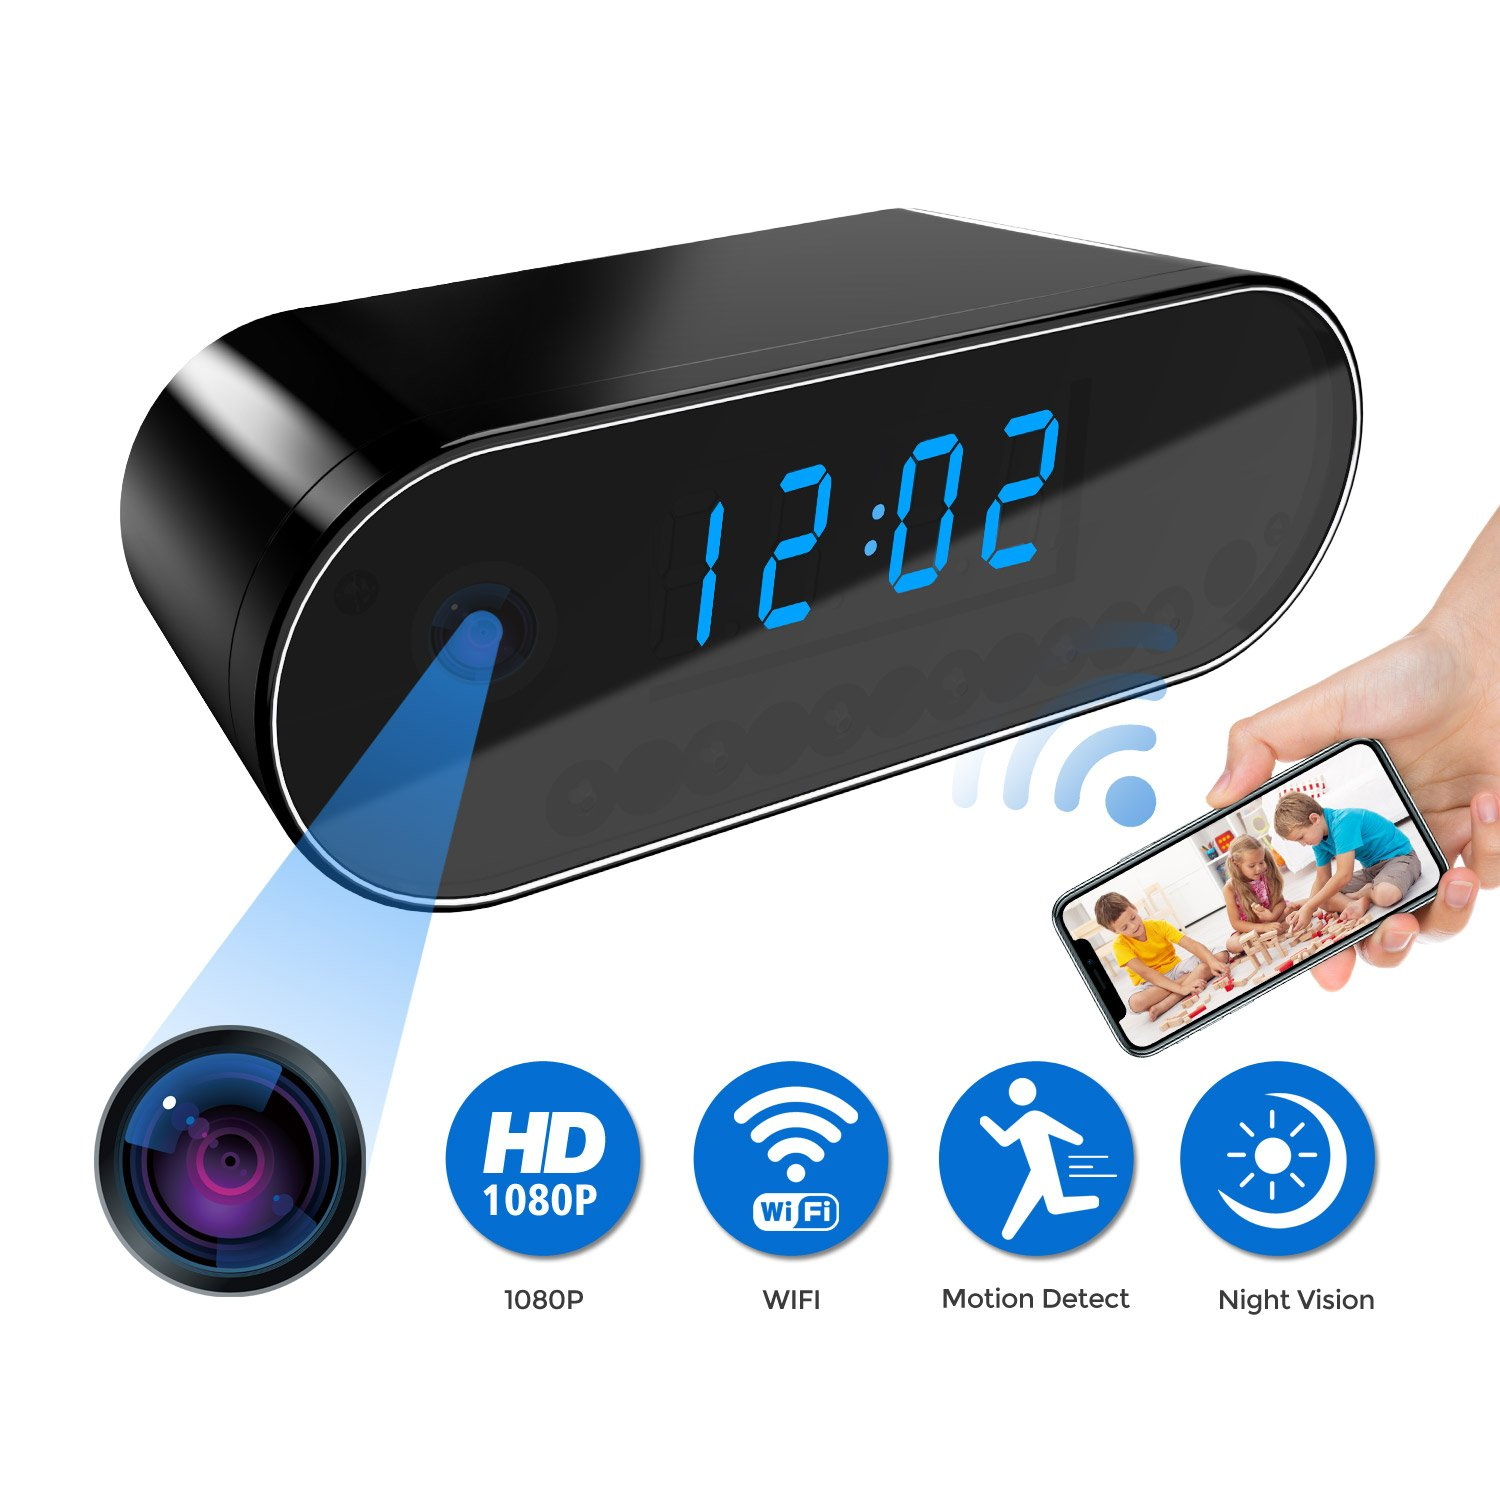 Camera Clock, Mini Security Camera Clock, 1080P Wireless WIFI Security Camera clock with Night Vision and Motion Detection, Wireless Camera for Home Security Surveillance with Free APP by Saleward